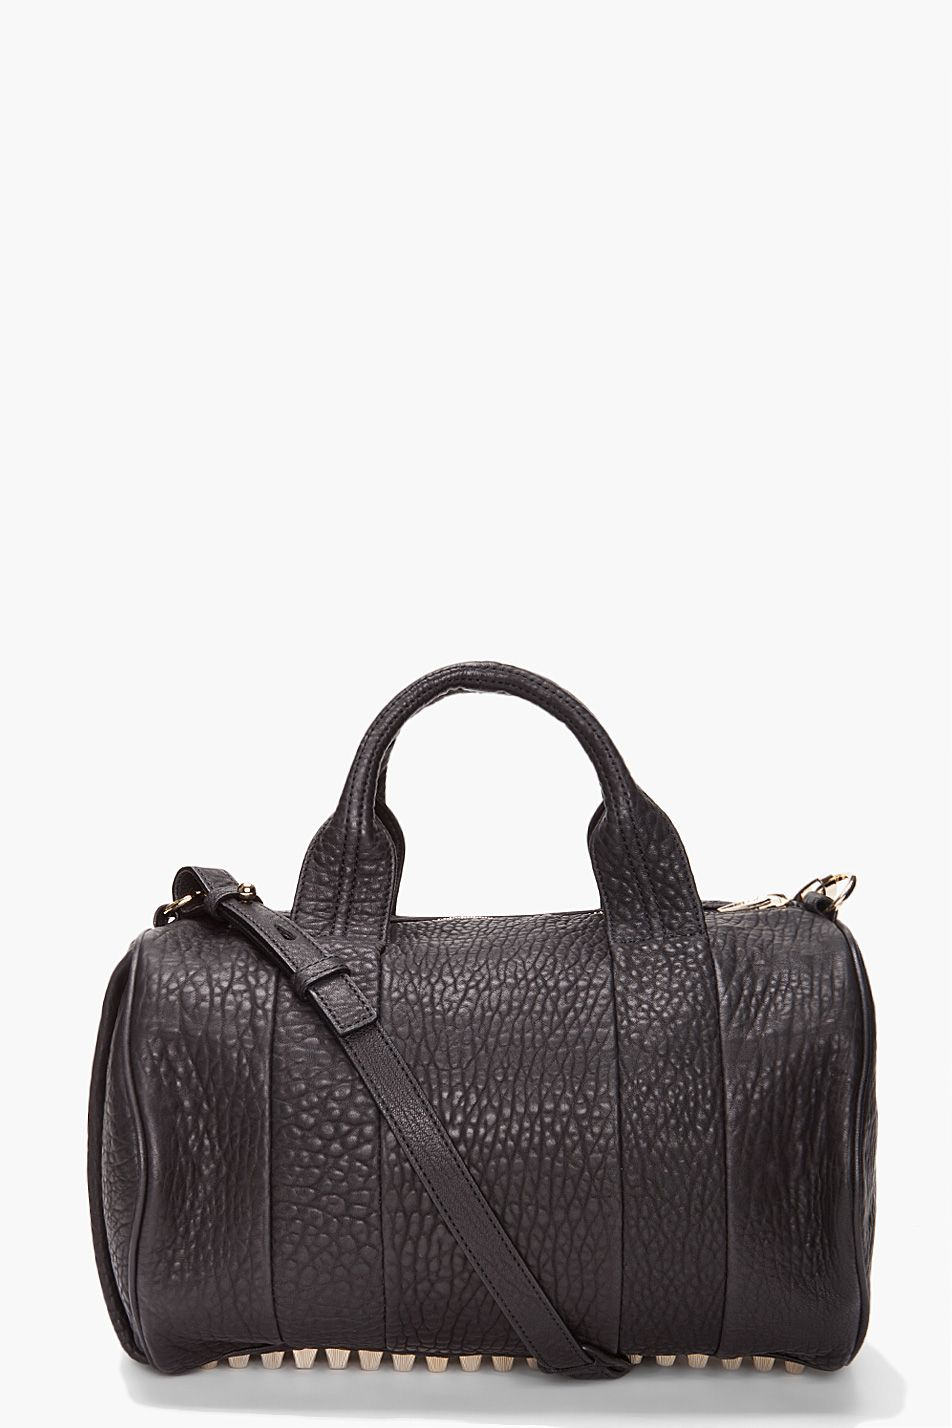 Alexander Rocco Bag Yes Of Course I Need A